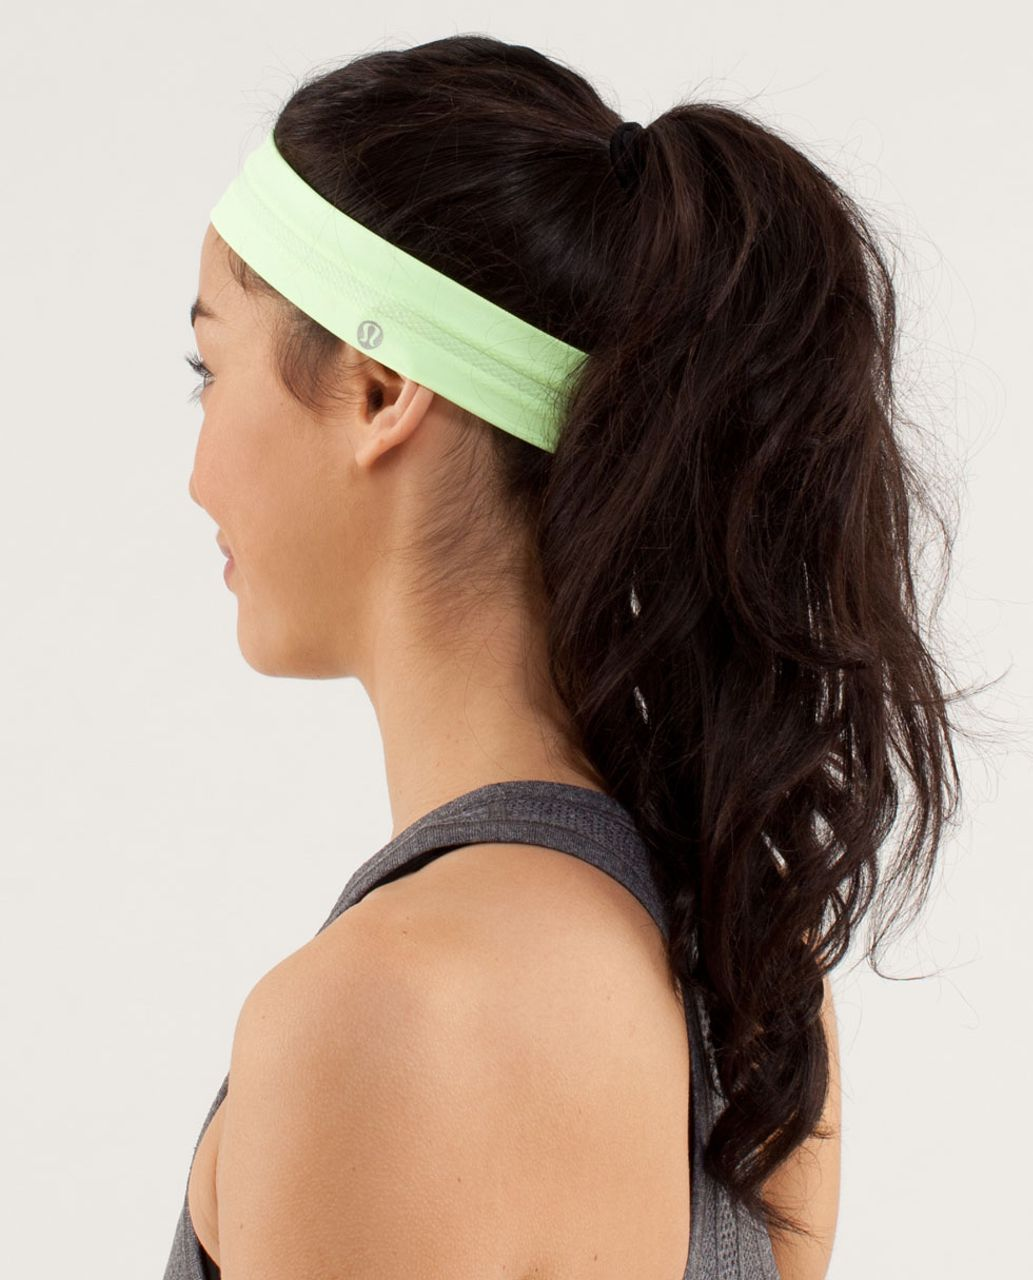 Lululemon Swiftly Headband - Faded Zap